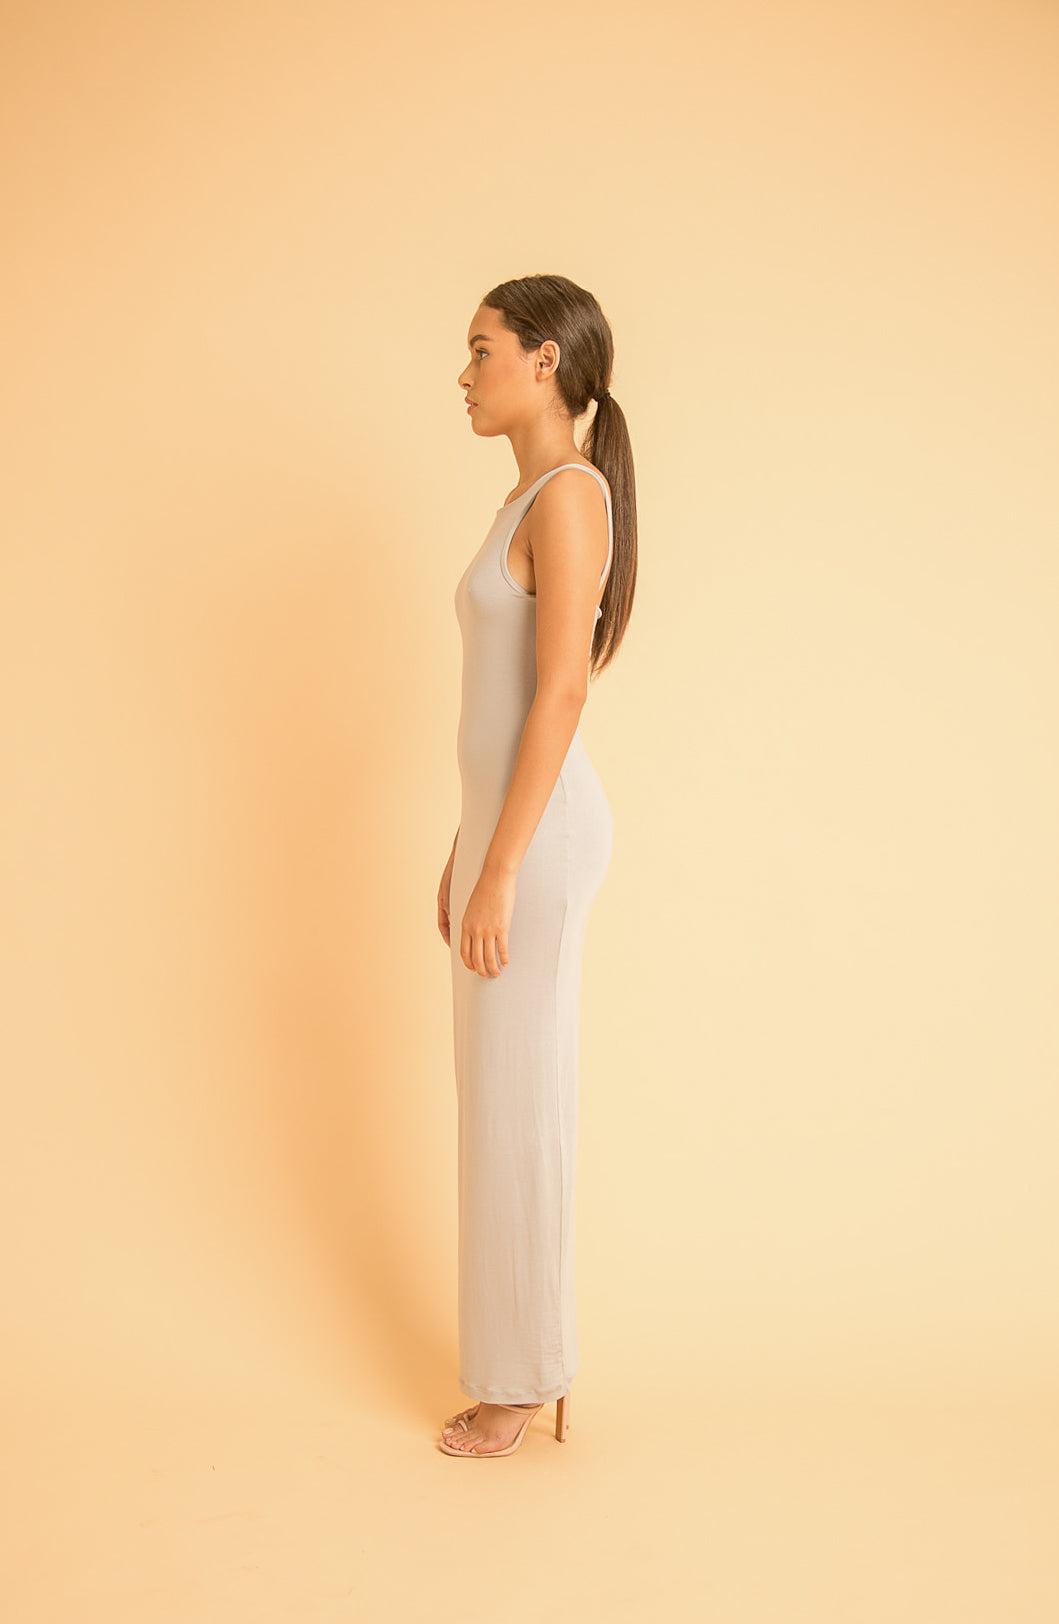 saint-mojavi - BOAT-NECK TANK DRESS - SAÏNT MOJAVÏ -